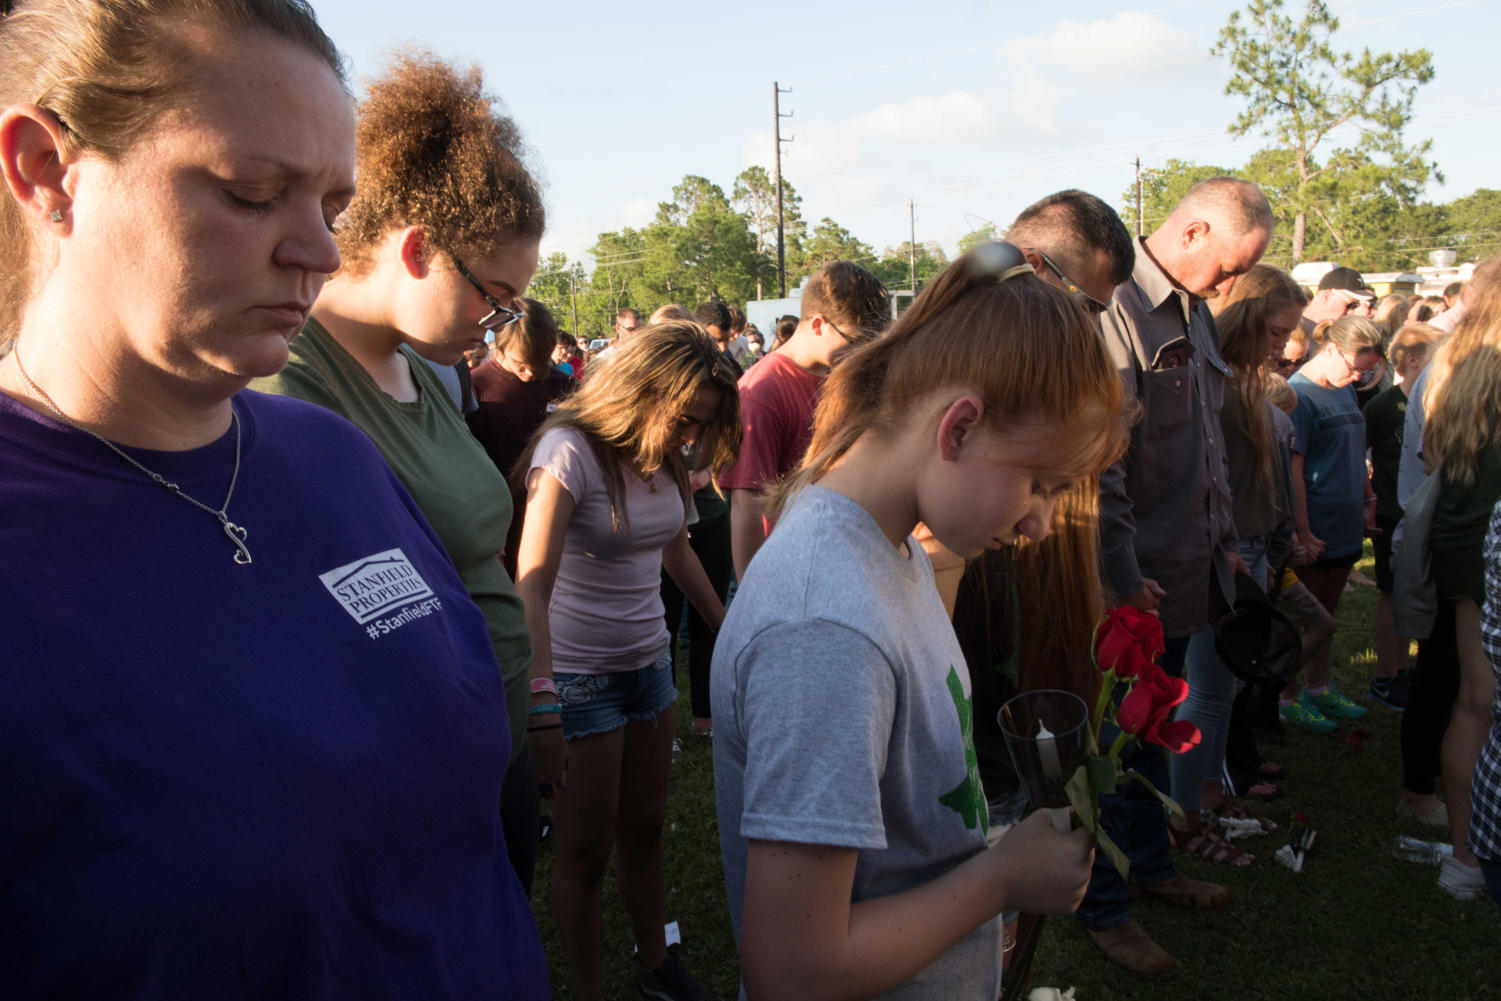 A vigil is held for victims of a deadly shooting at Santa Fe High school on May 18, 2018. Ten people were killed and 10 wounded in a shooting Friday morning at a high school south of Houston, authorities said. (Carolina Sanchez-Monge/Zuma Press/TNS)